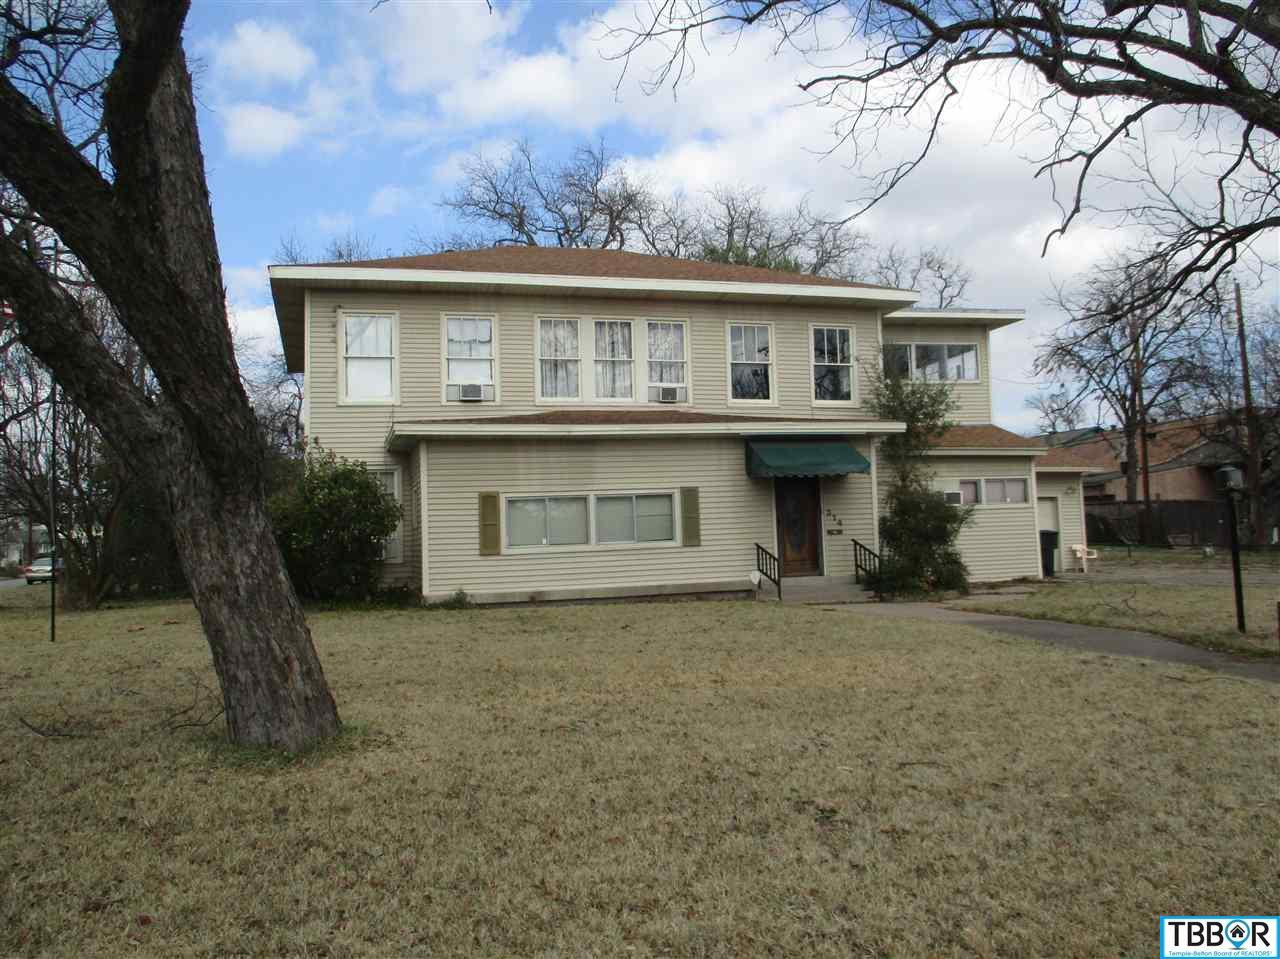 314 W Downs, Temple TX 76501